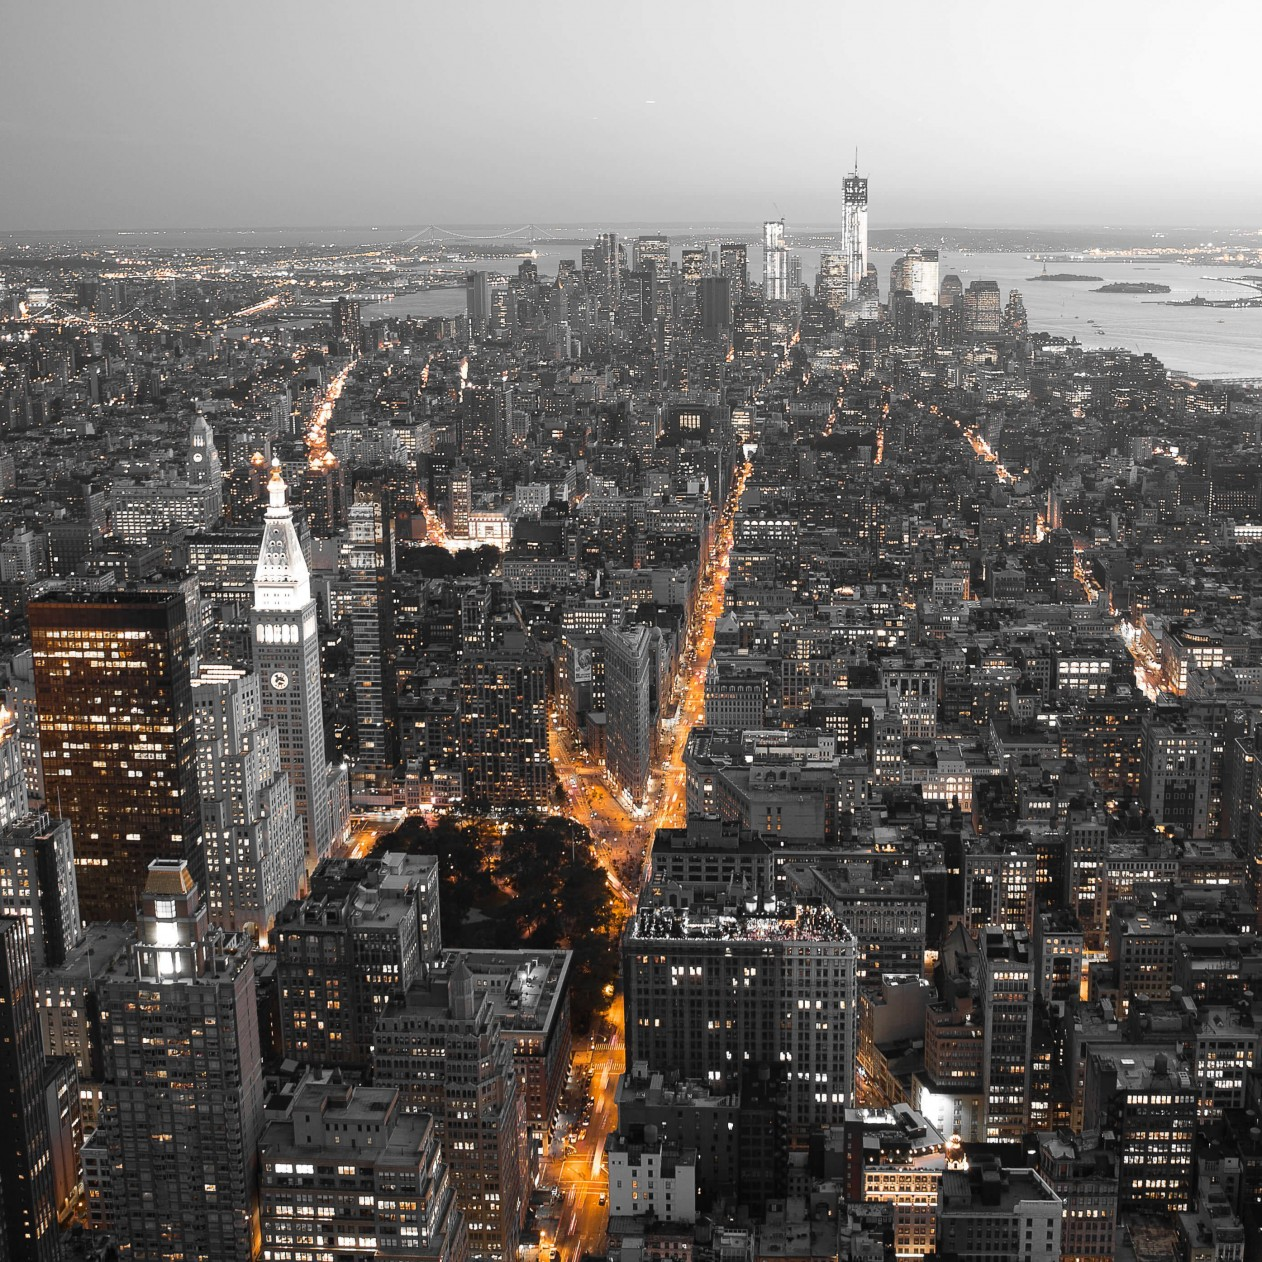 New York City by Night Wallpaper for Apple iPad mini